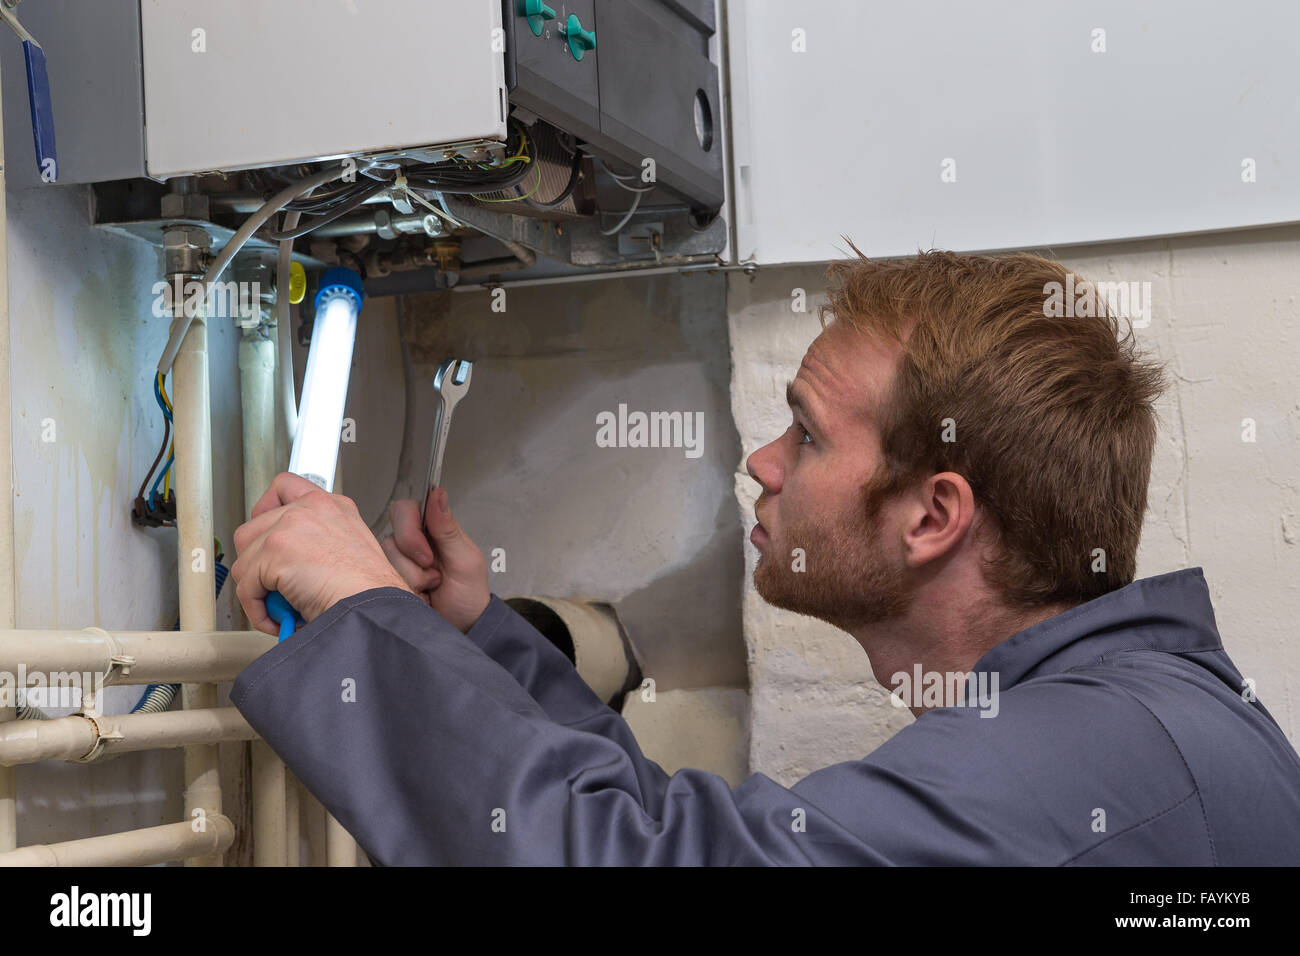 Technician controlling the heating system - Stock Image